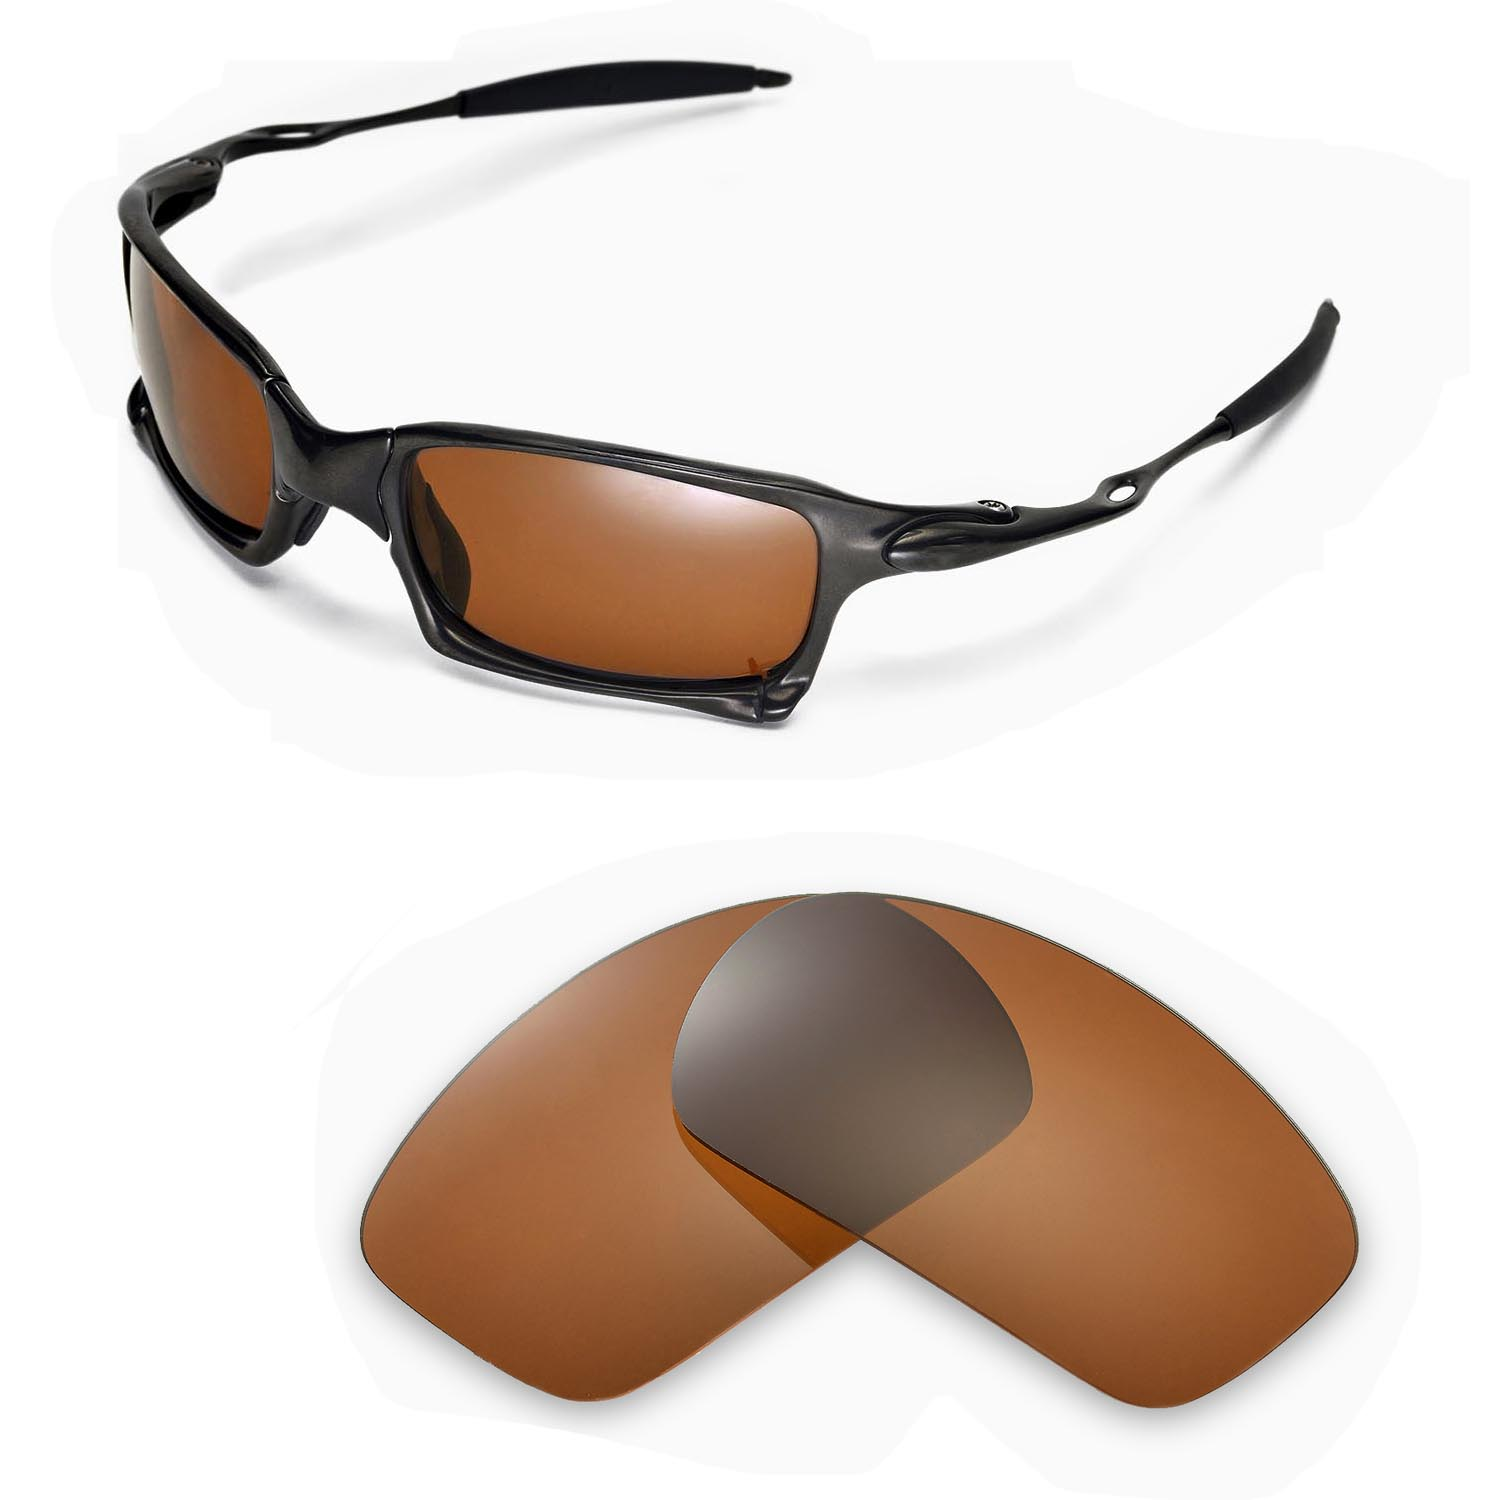 7d6b34f643b New Walleva Polarized Brown Replacement Lenses For Oakley X-Squared ...